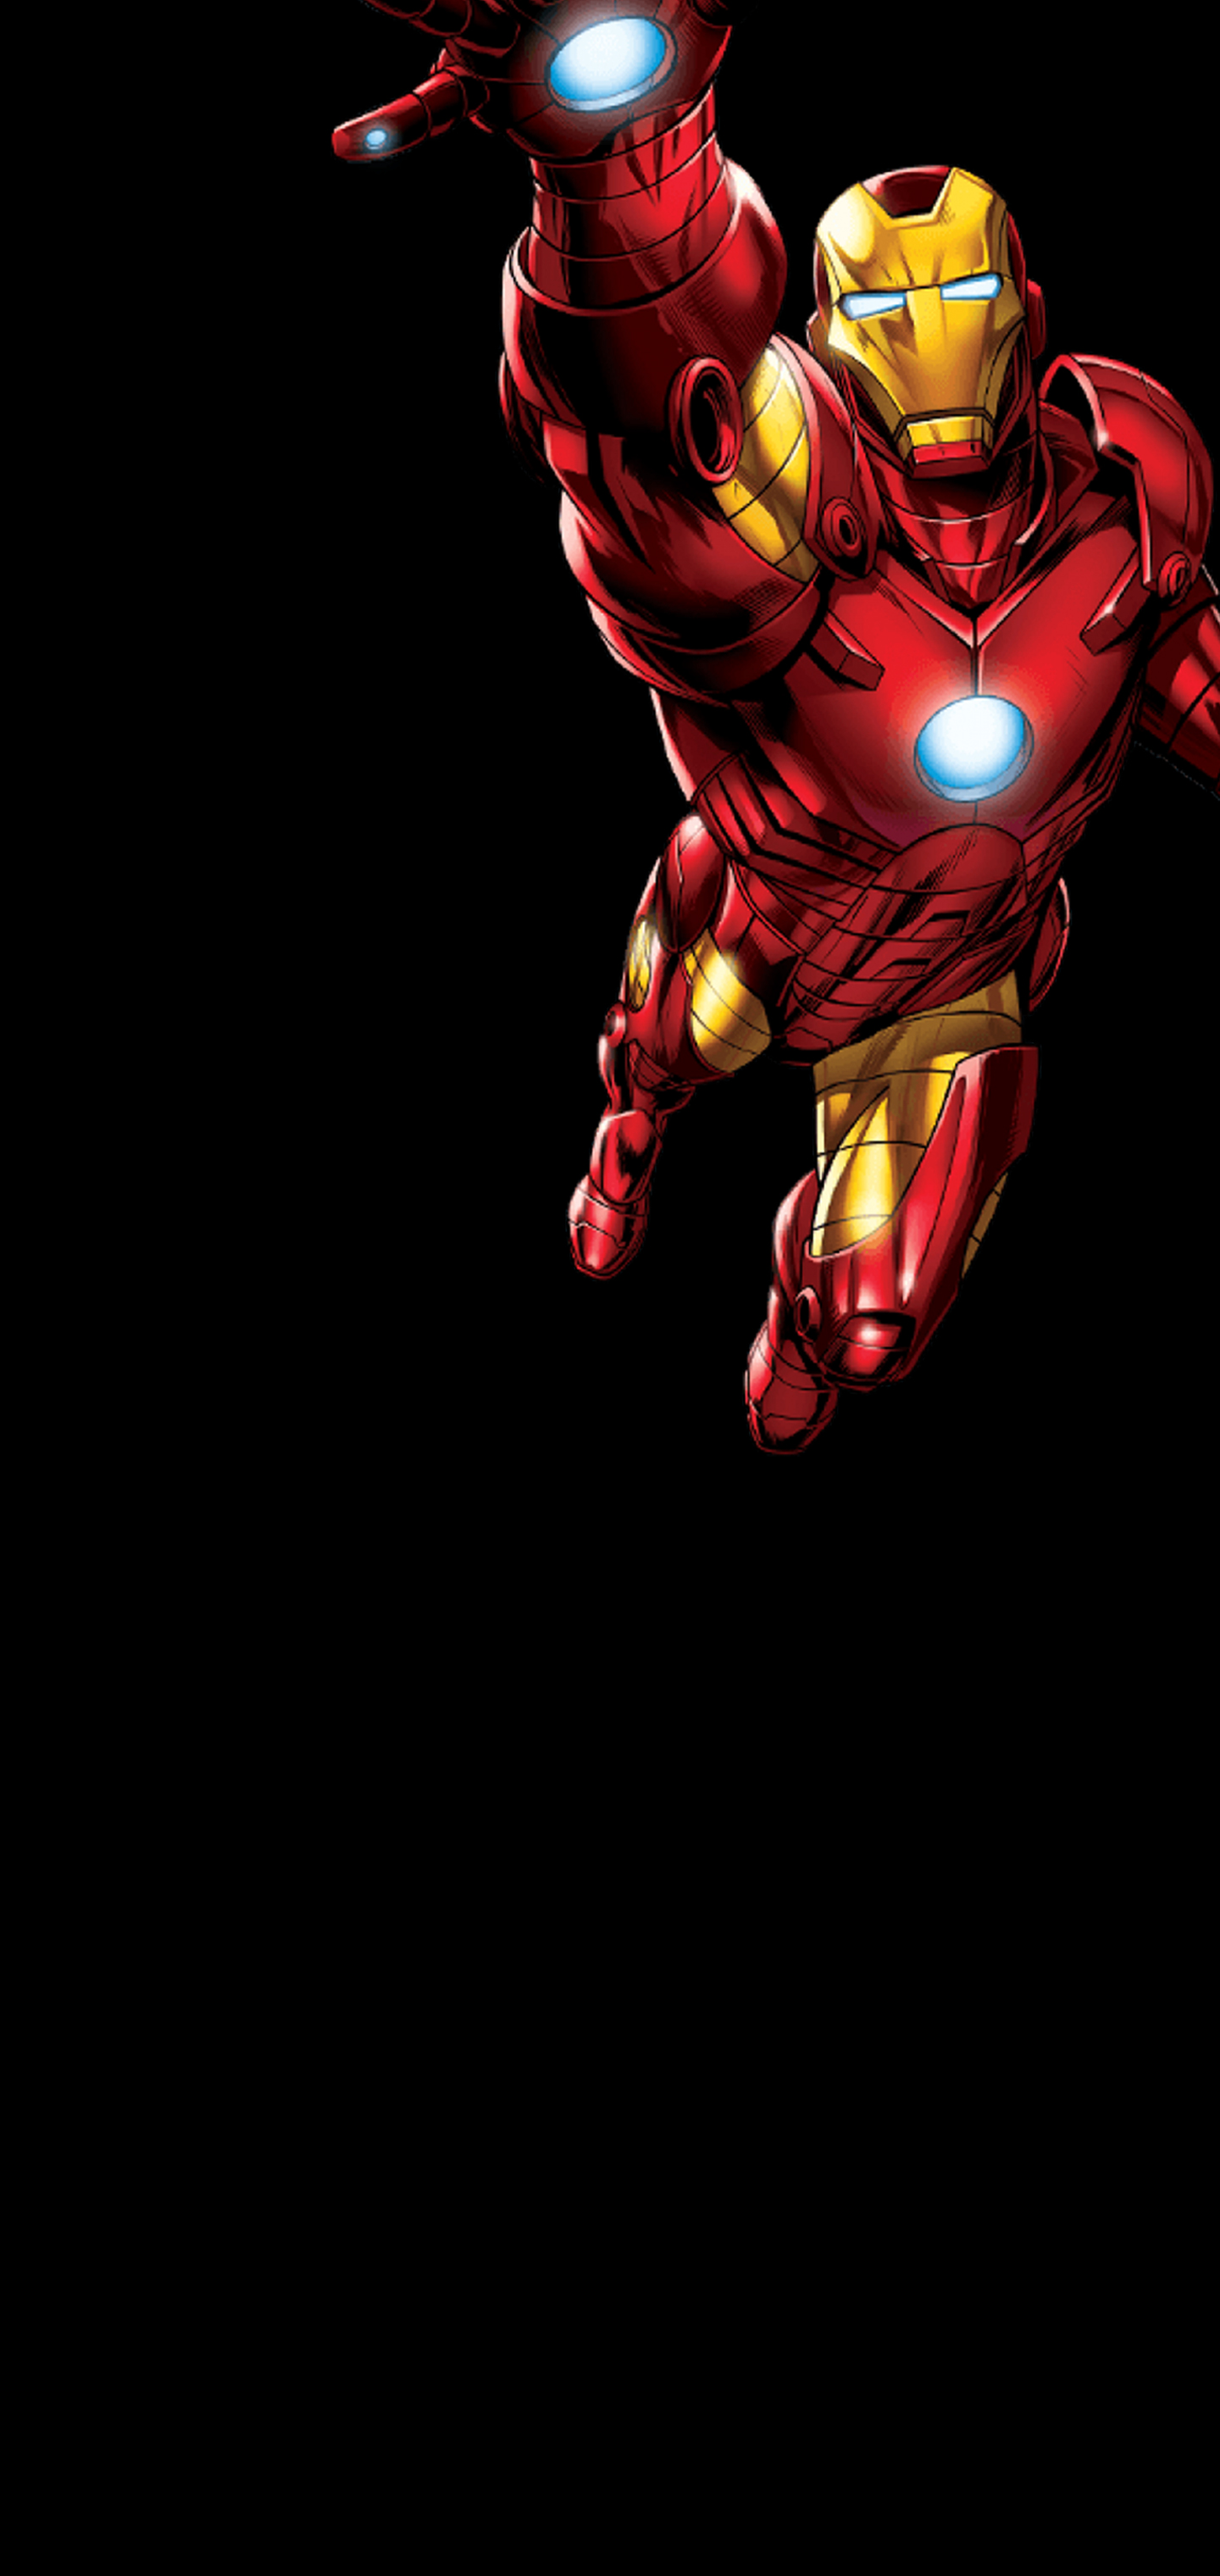 Iron Man - NSamsung Galaxy A51 and A71 HD Wallpapers